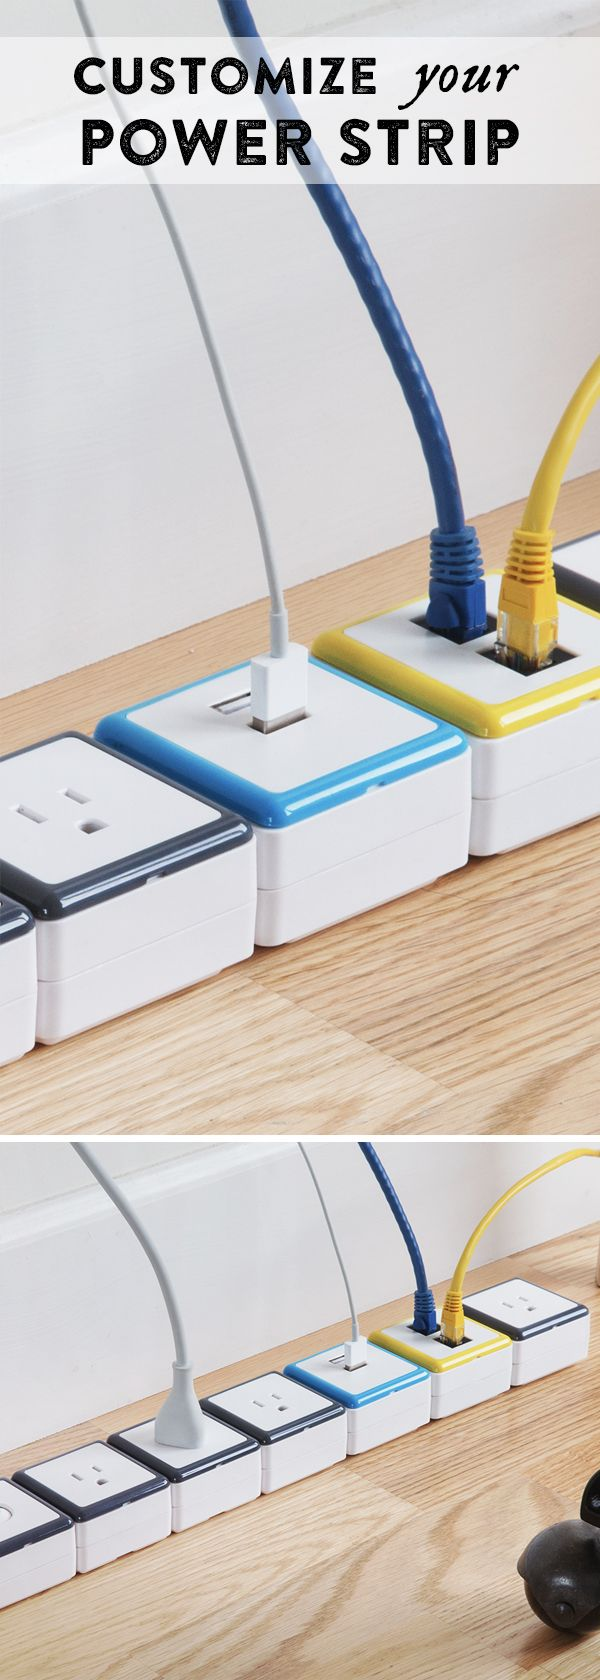 Configure these power strips to have exactly the number and kind of outlets you need. It's as easy as snapping on or removing modules.